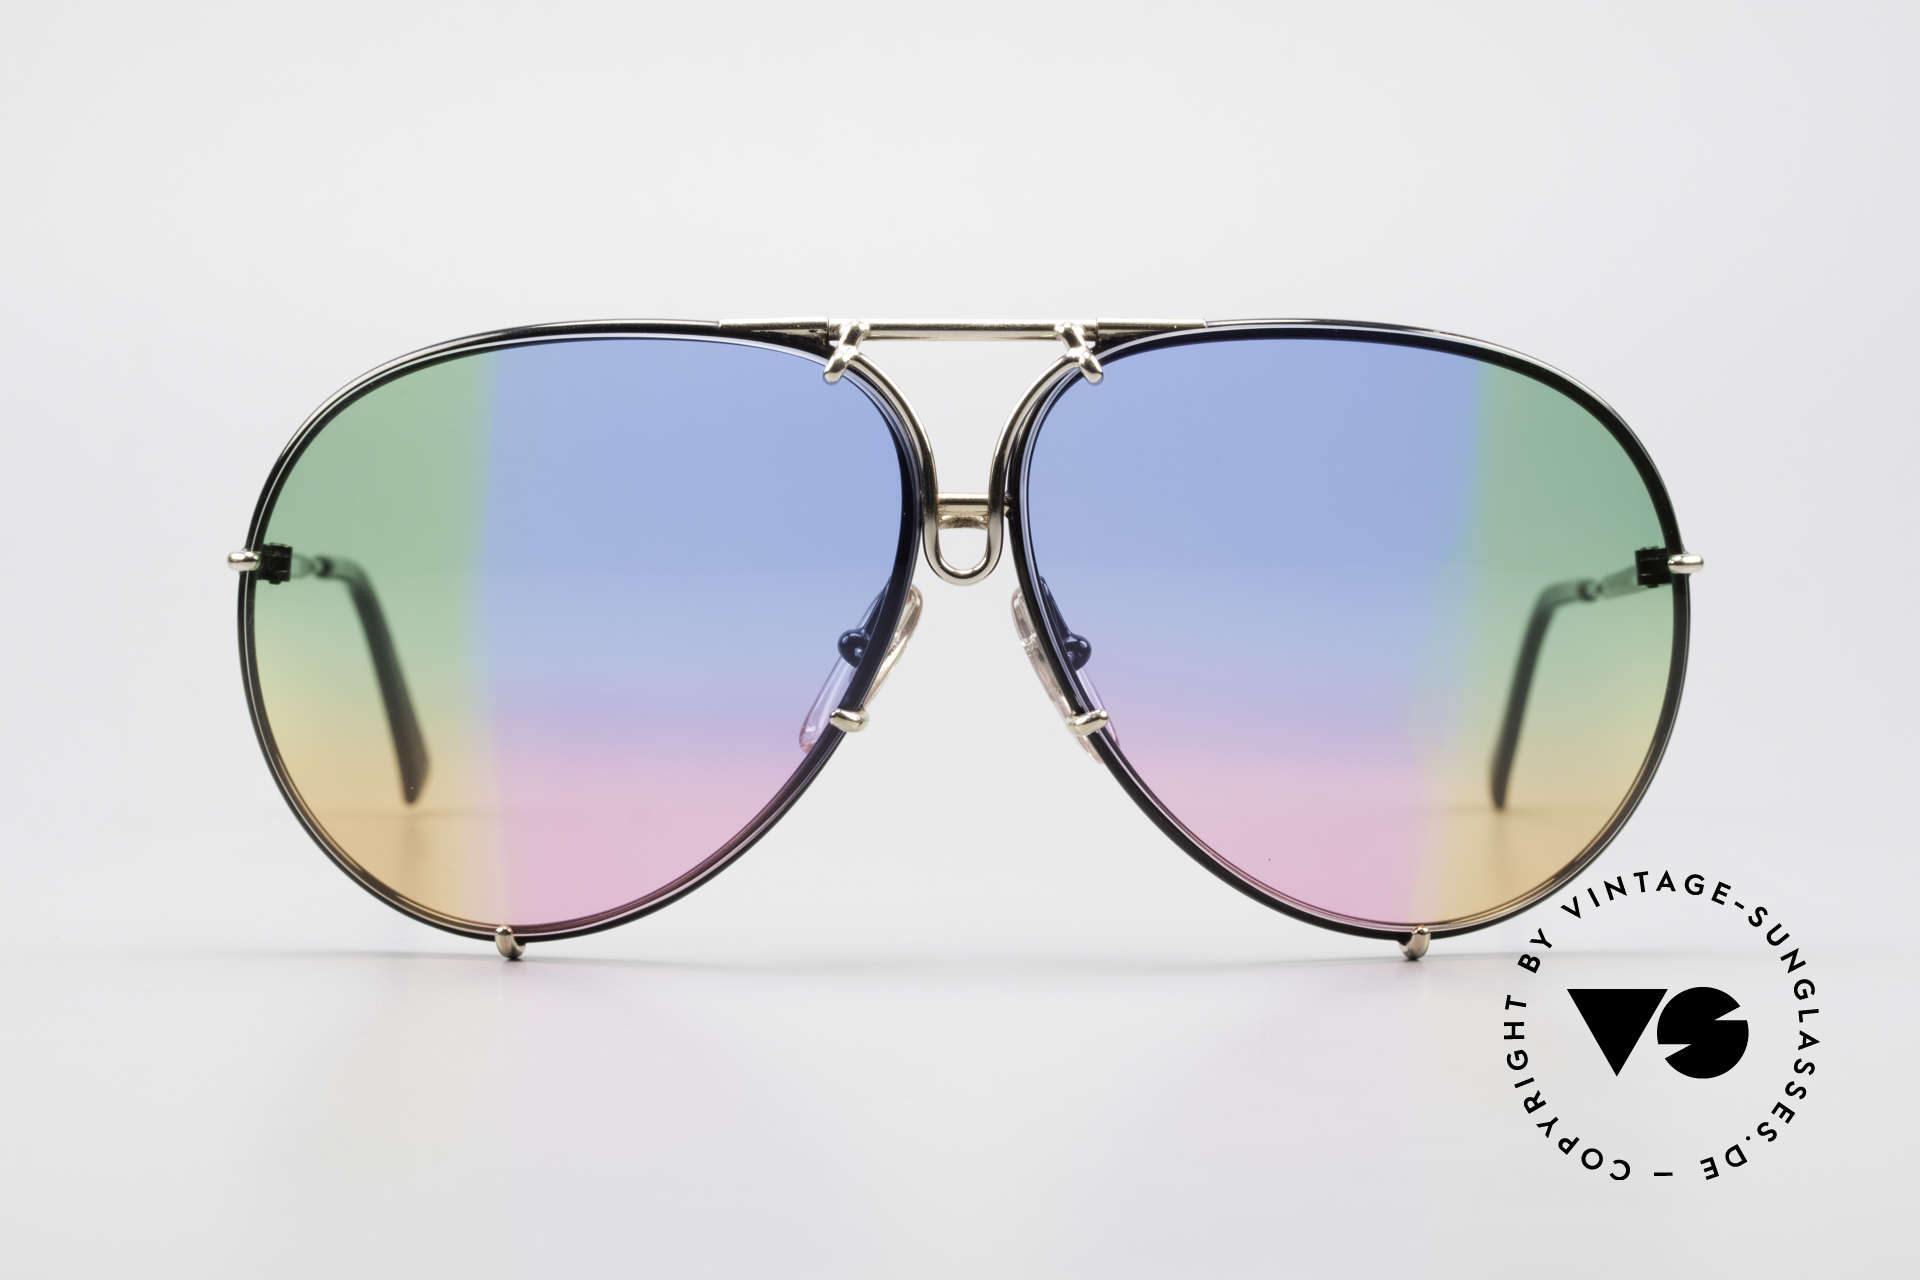 Porsche 5623 One Of A Kind 4times Gradient, the legendary classic with the interchangeable lenses, Made for Men and Women